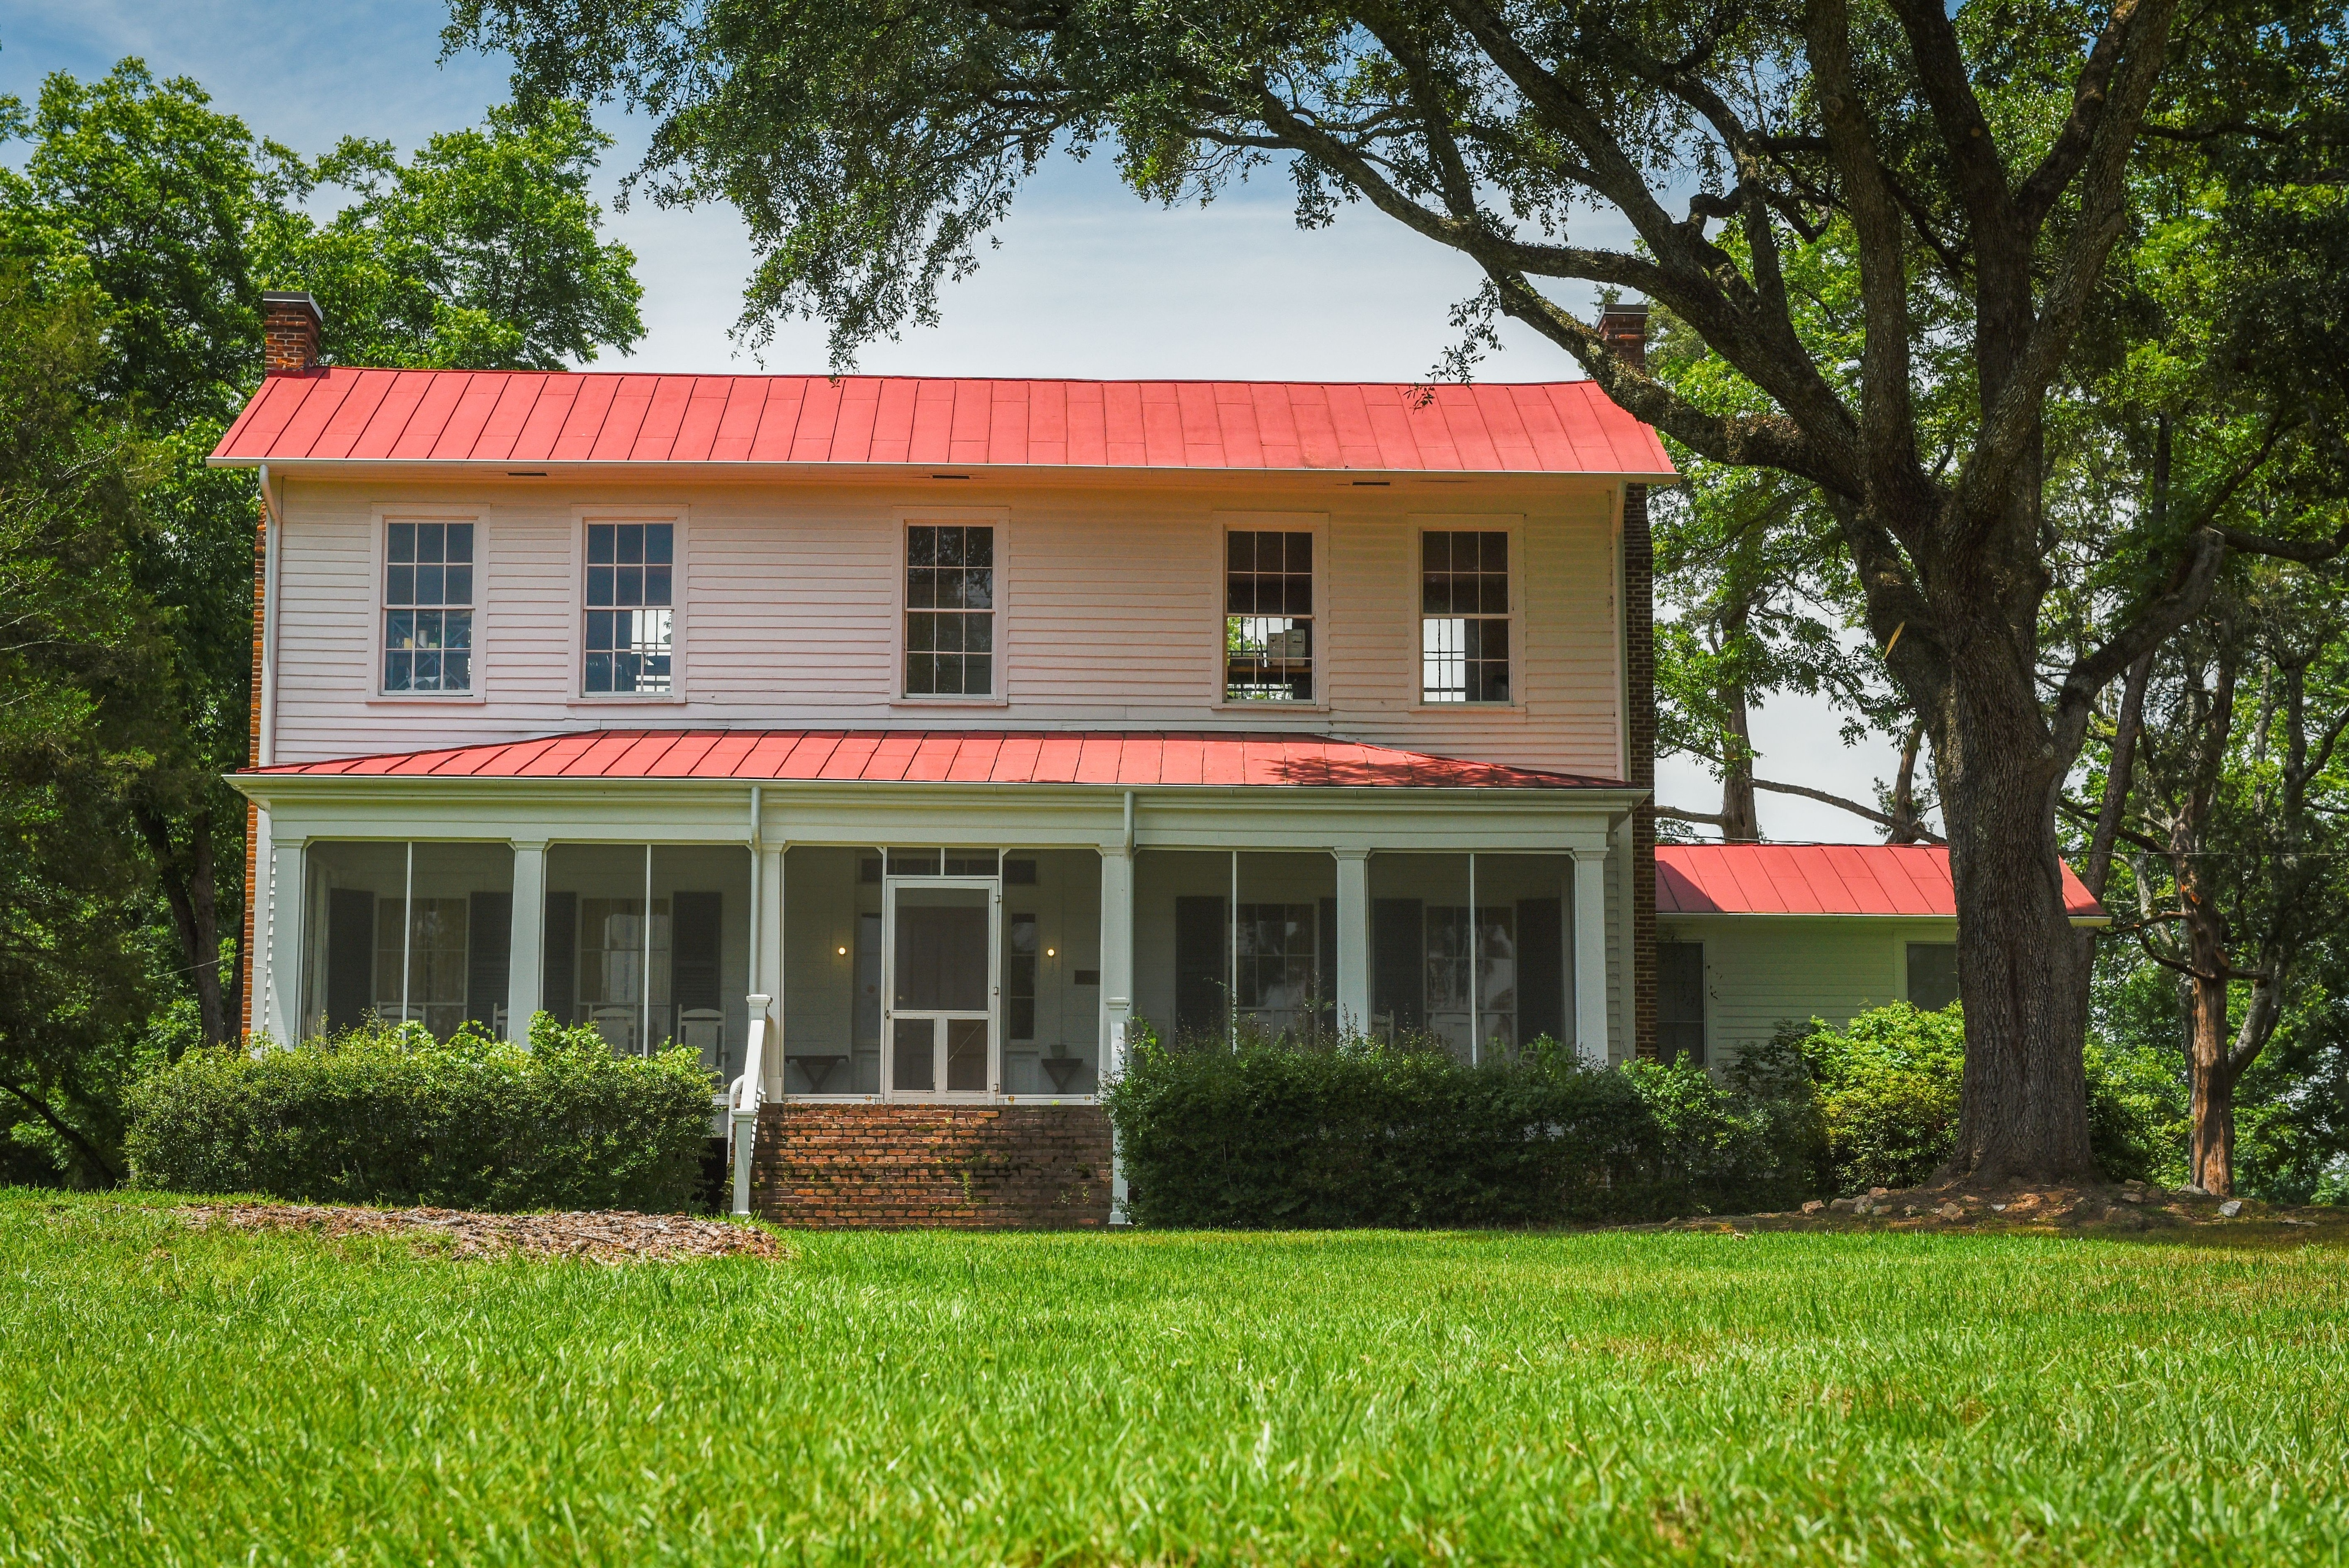 Andalusia was home to World-famed Author Flannery O'Connor from 1951 to 1964.